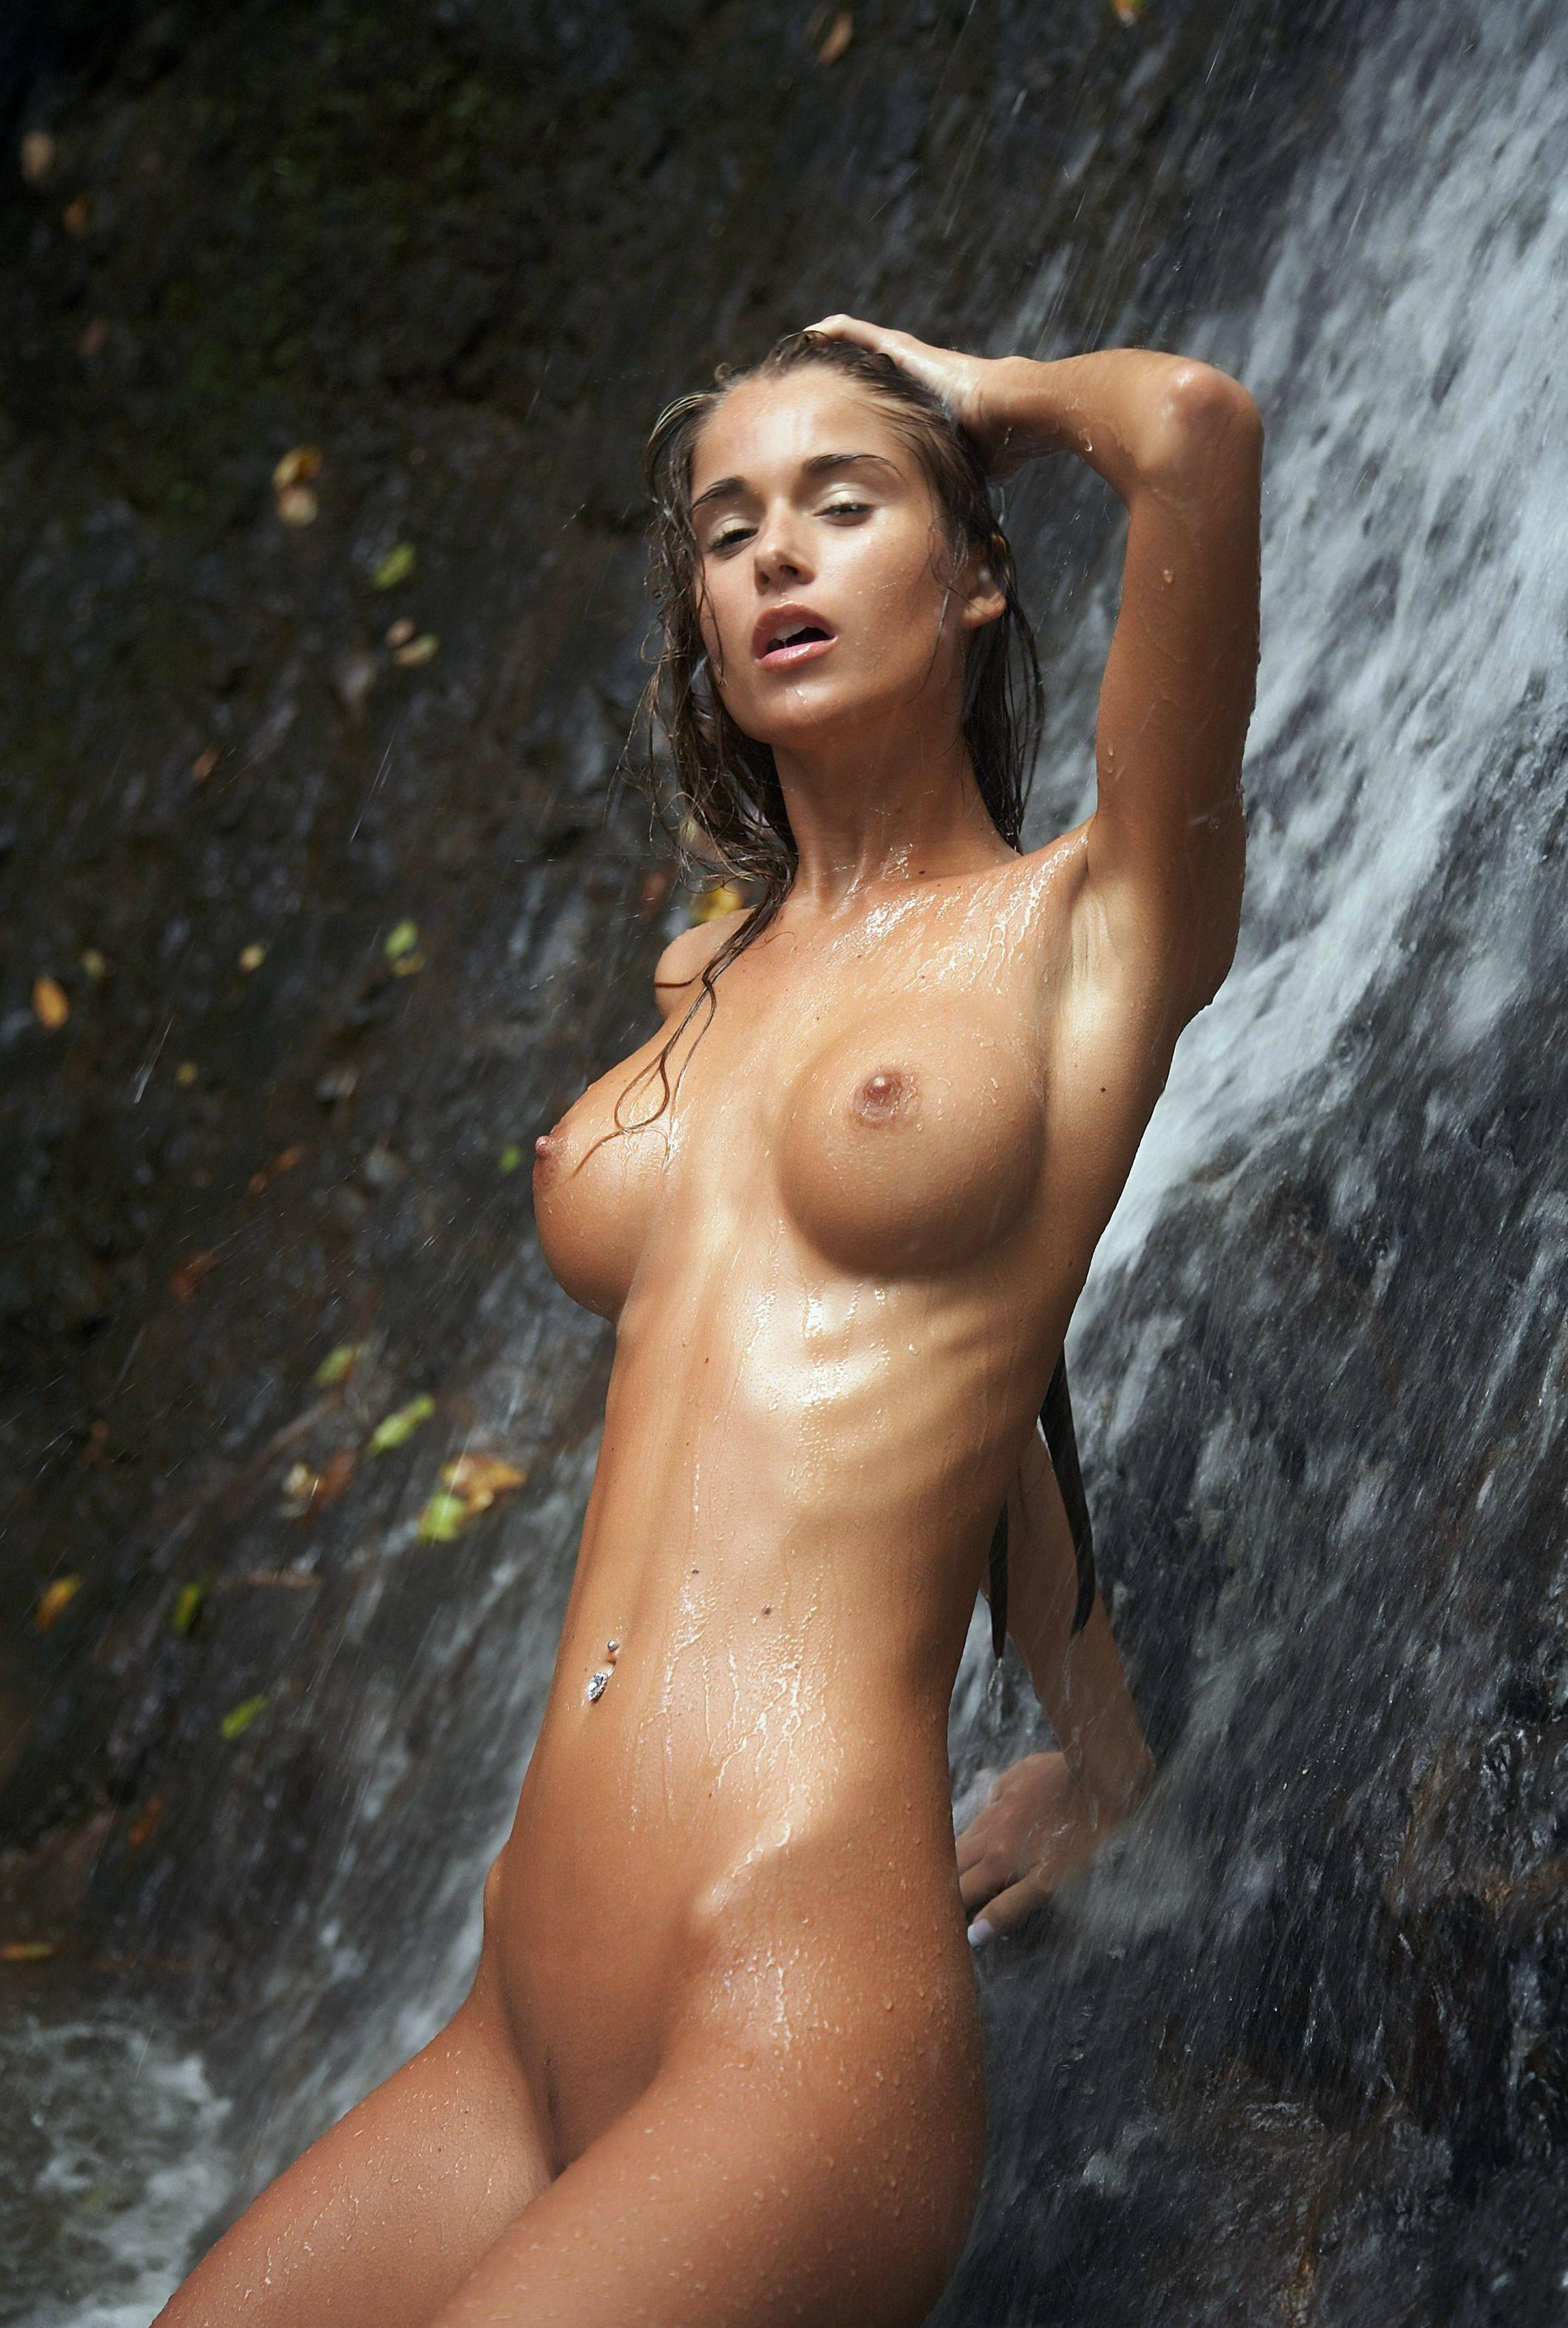 Damsel with gorgeous boobies under the waterfall